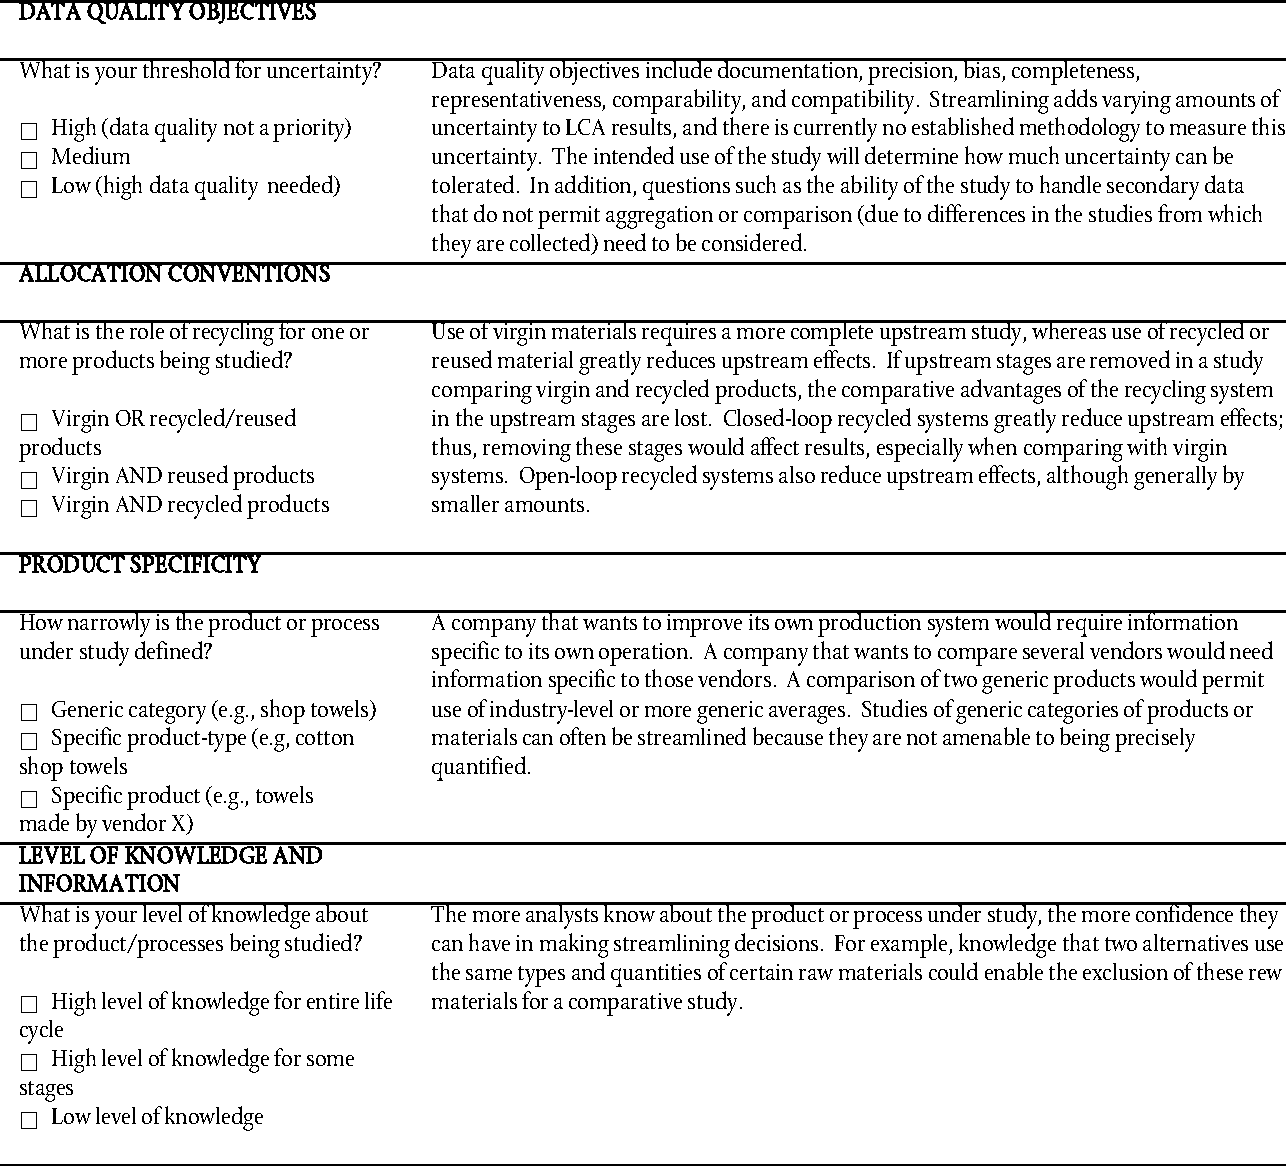 Table 2-1 from Streamlined Life-Cycle Assessment : A Final Report